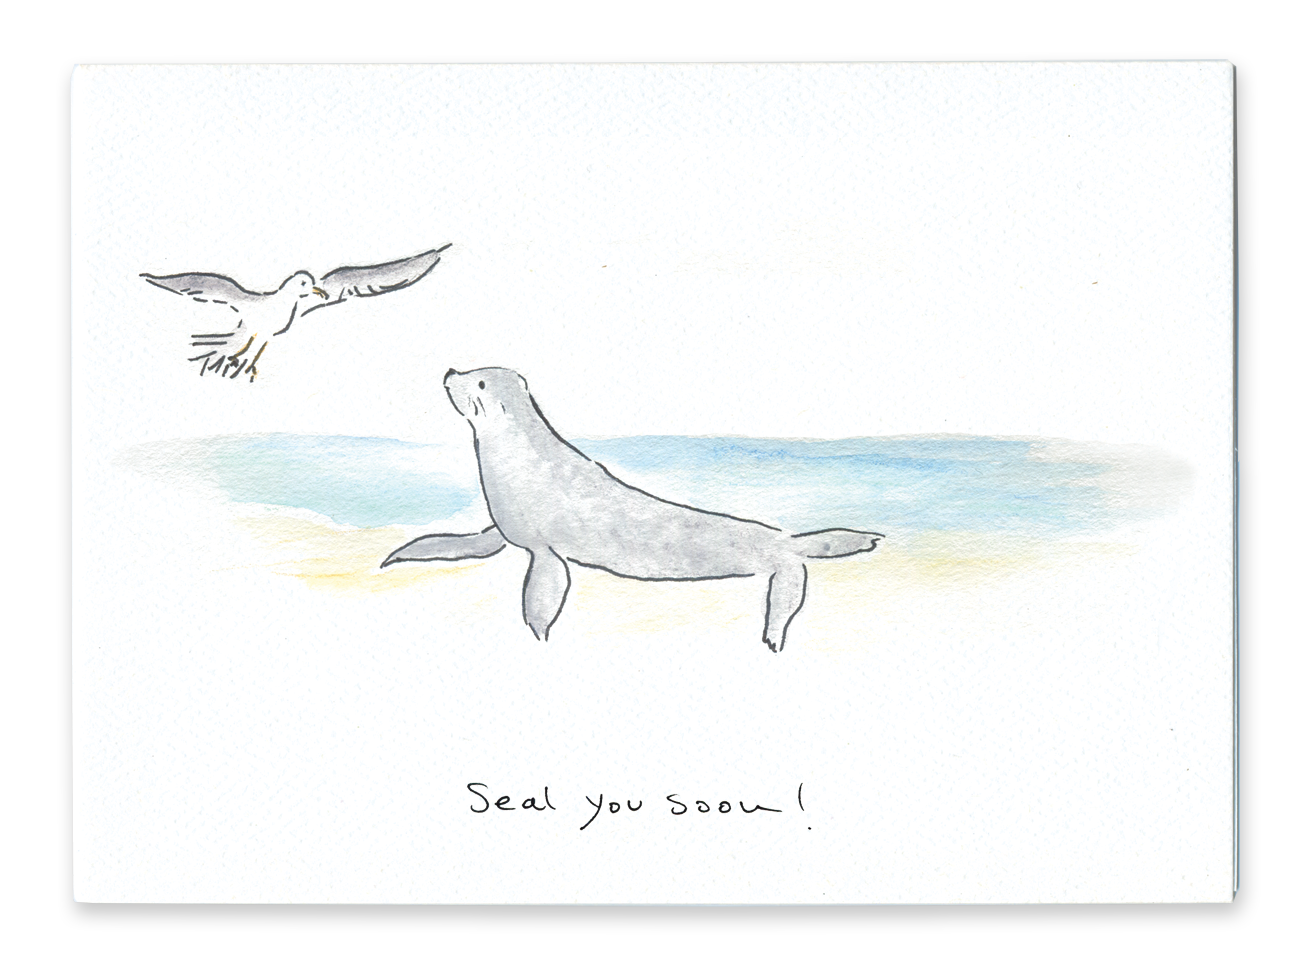 Seal You Soon